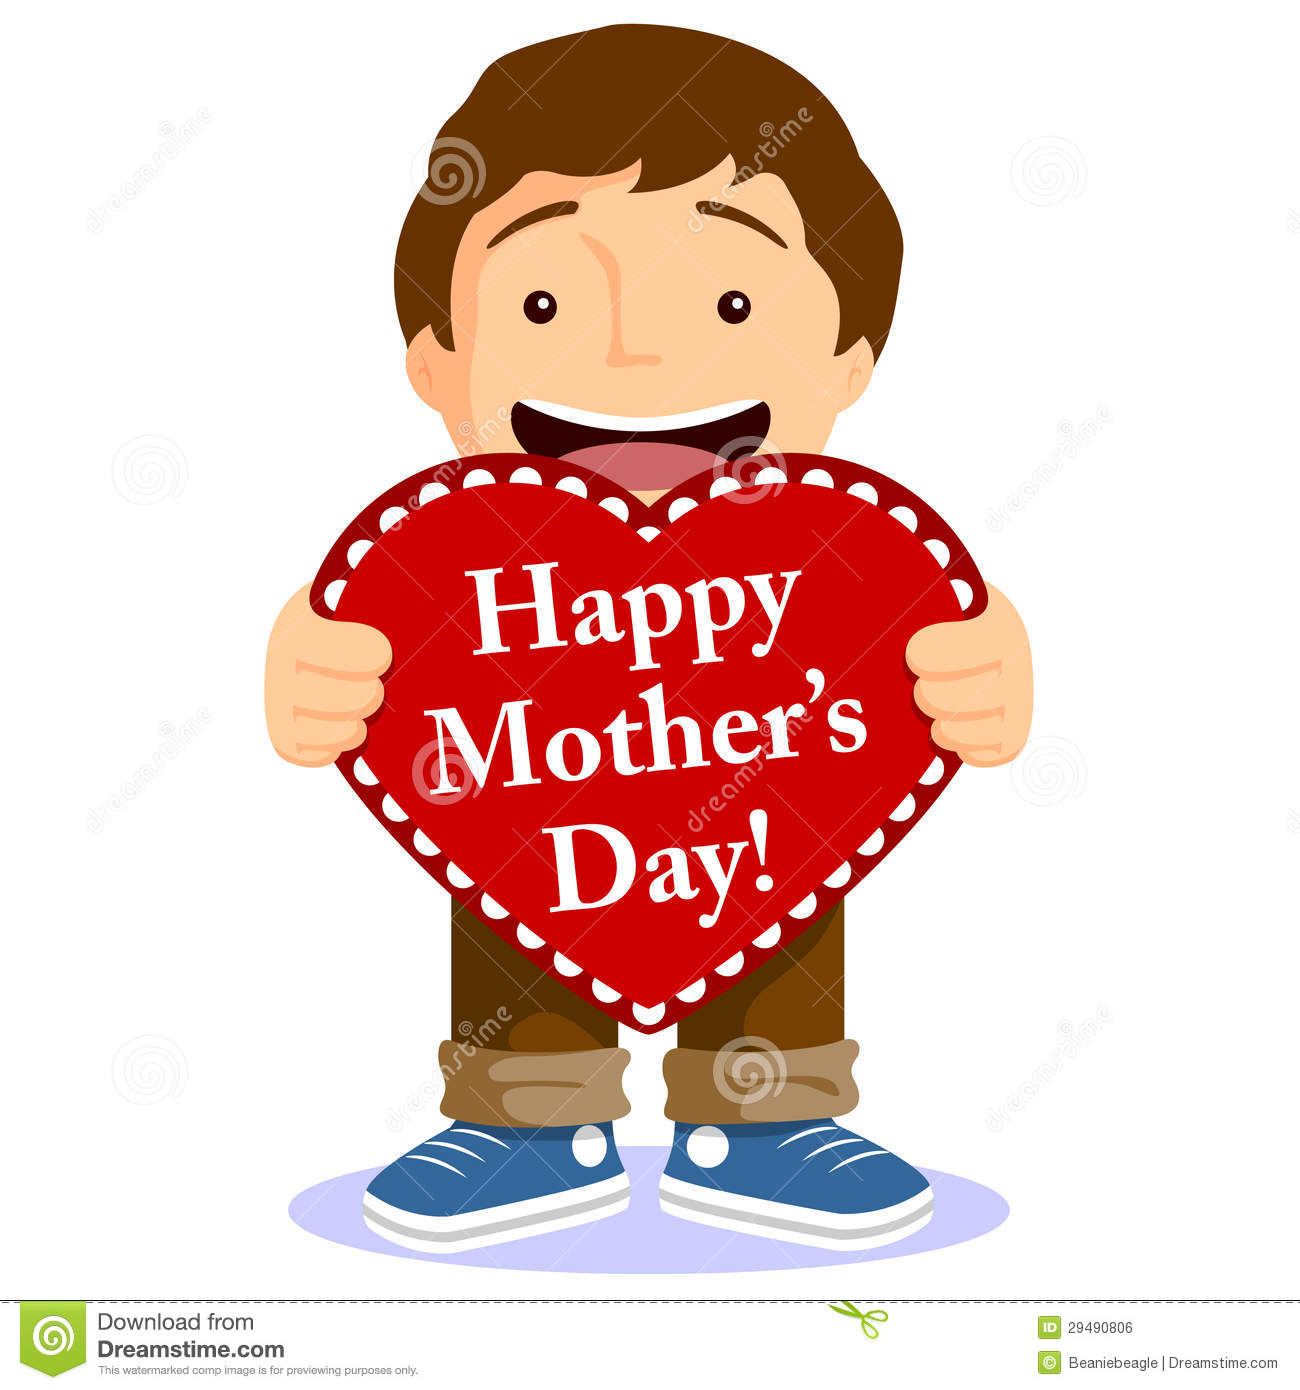 Cute Boy With Mothers Day Card Stock Vector - Image: 29490806